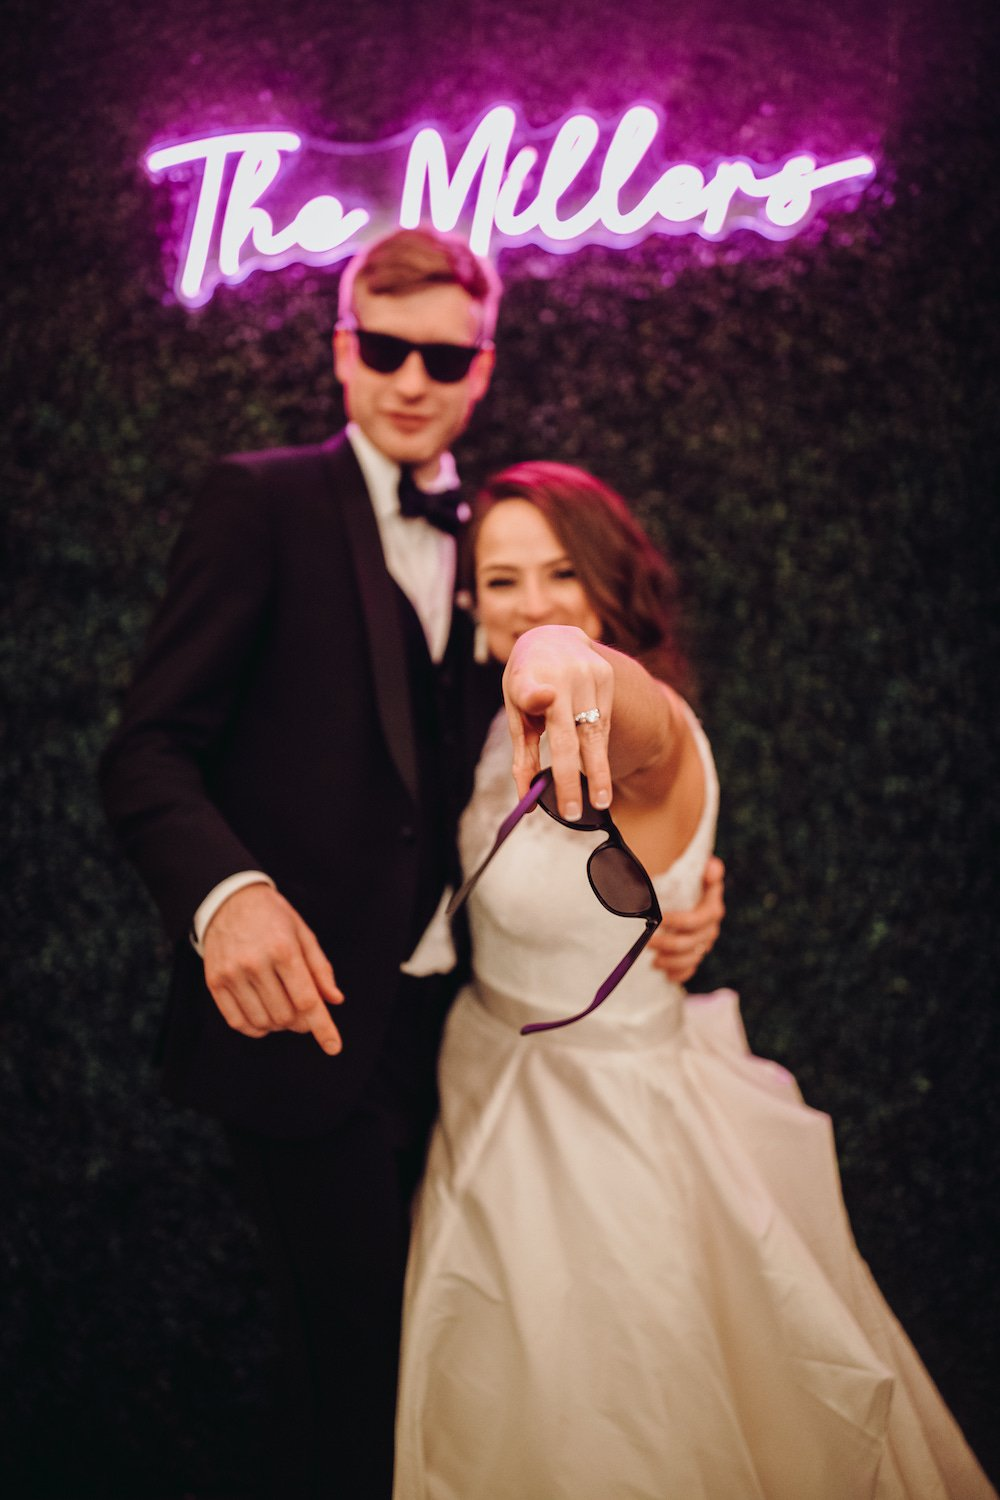 """Groom, wearing sunglasses and bride pointing to camera with sun glasses in hand, in front of greenery statement wall with fuchsia colored LED sign that reads, """"The Millers"""""""